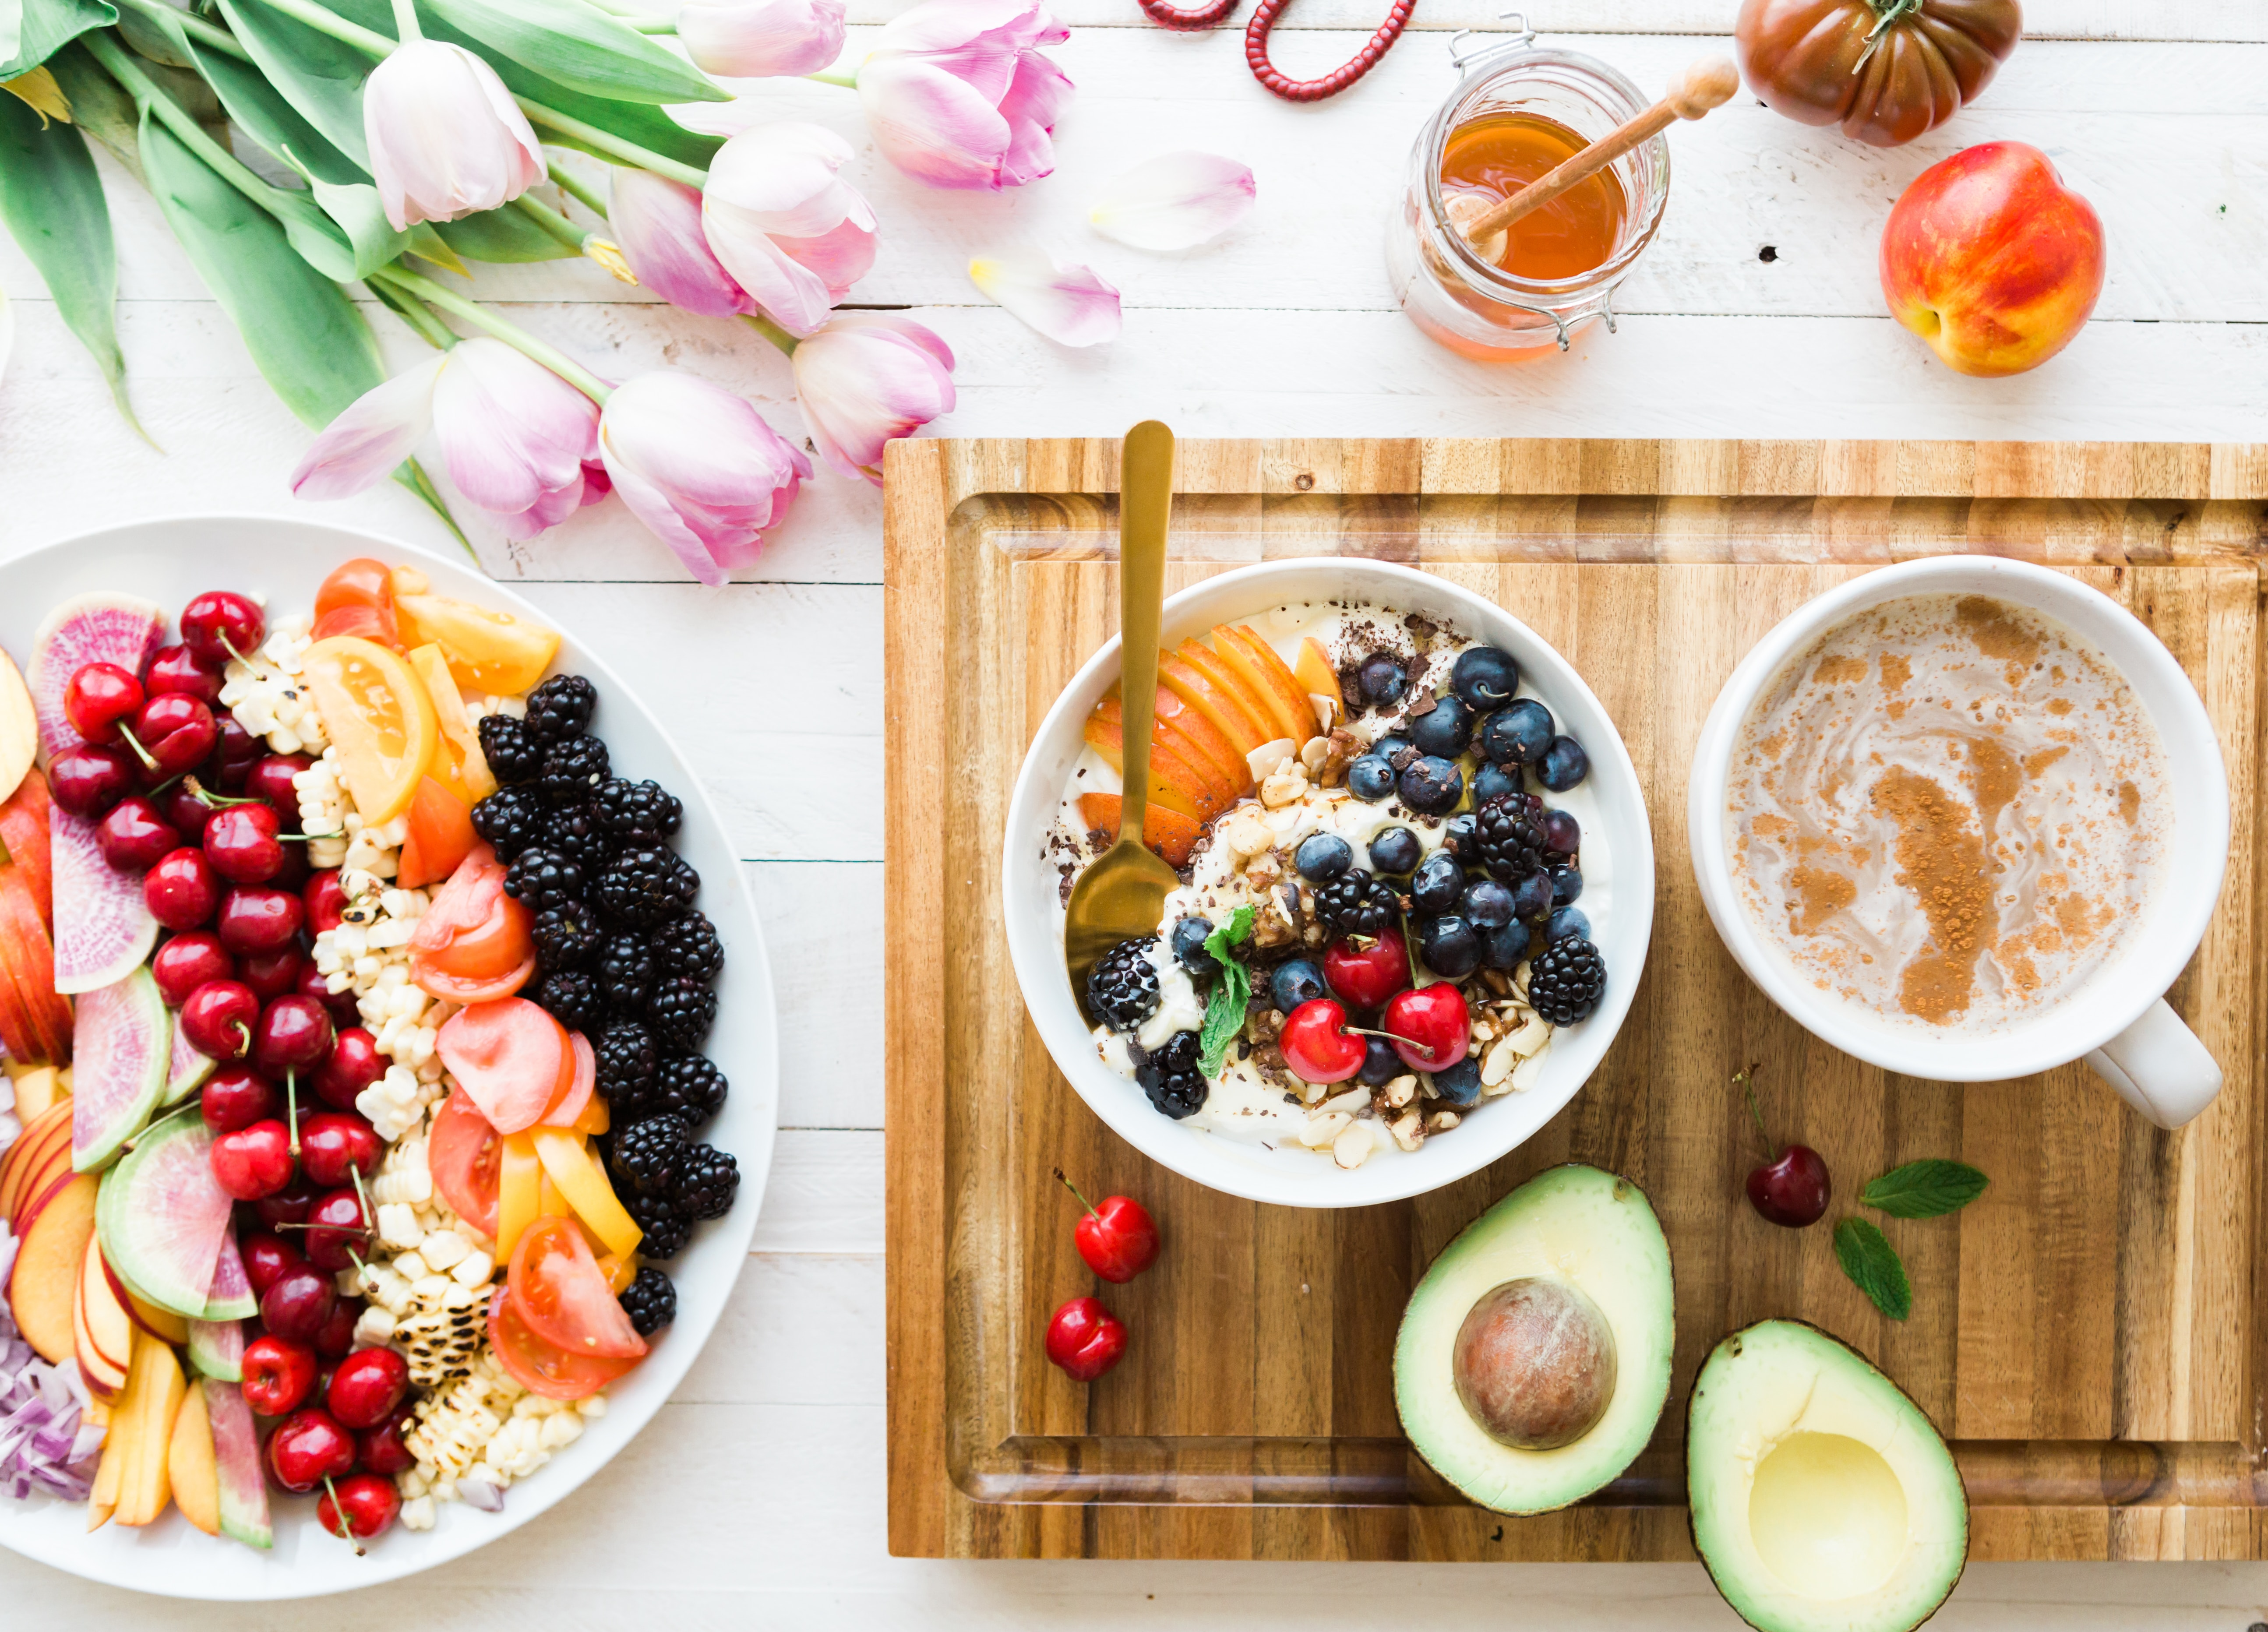 nutrition at wellness on whyte